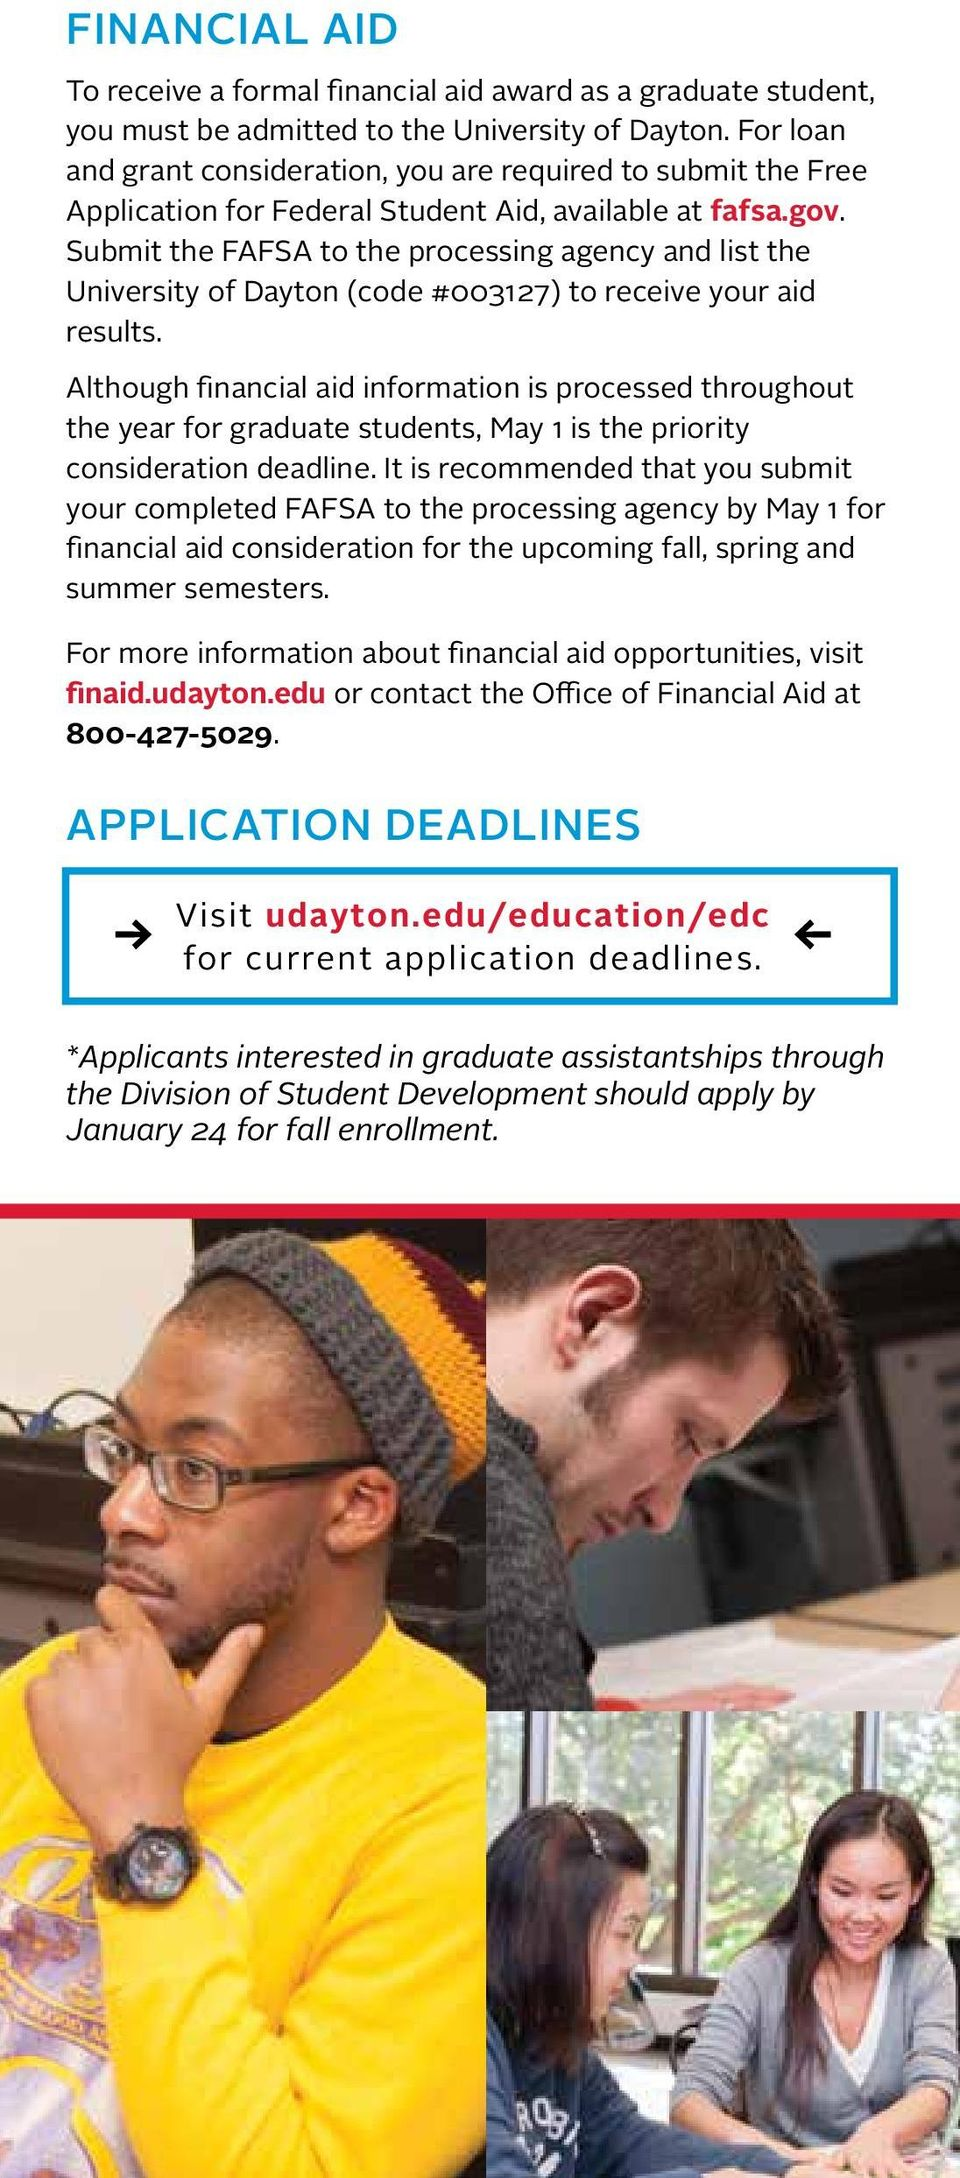 Submit the FAFSA to the processing agency and list the University of Dayton (code #003127) to receive your aid results.